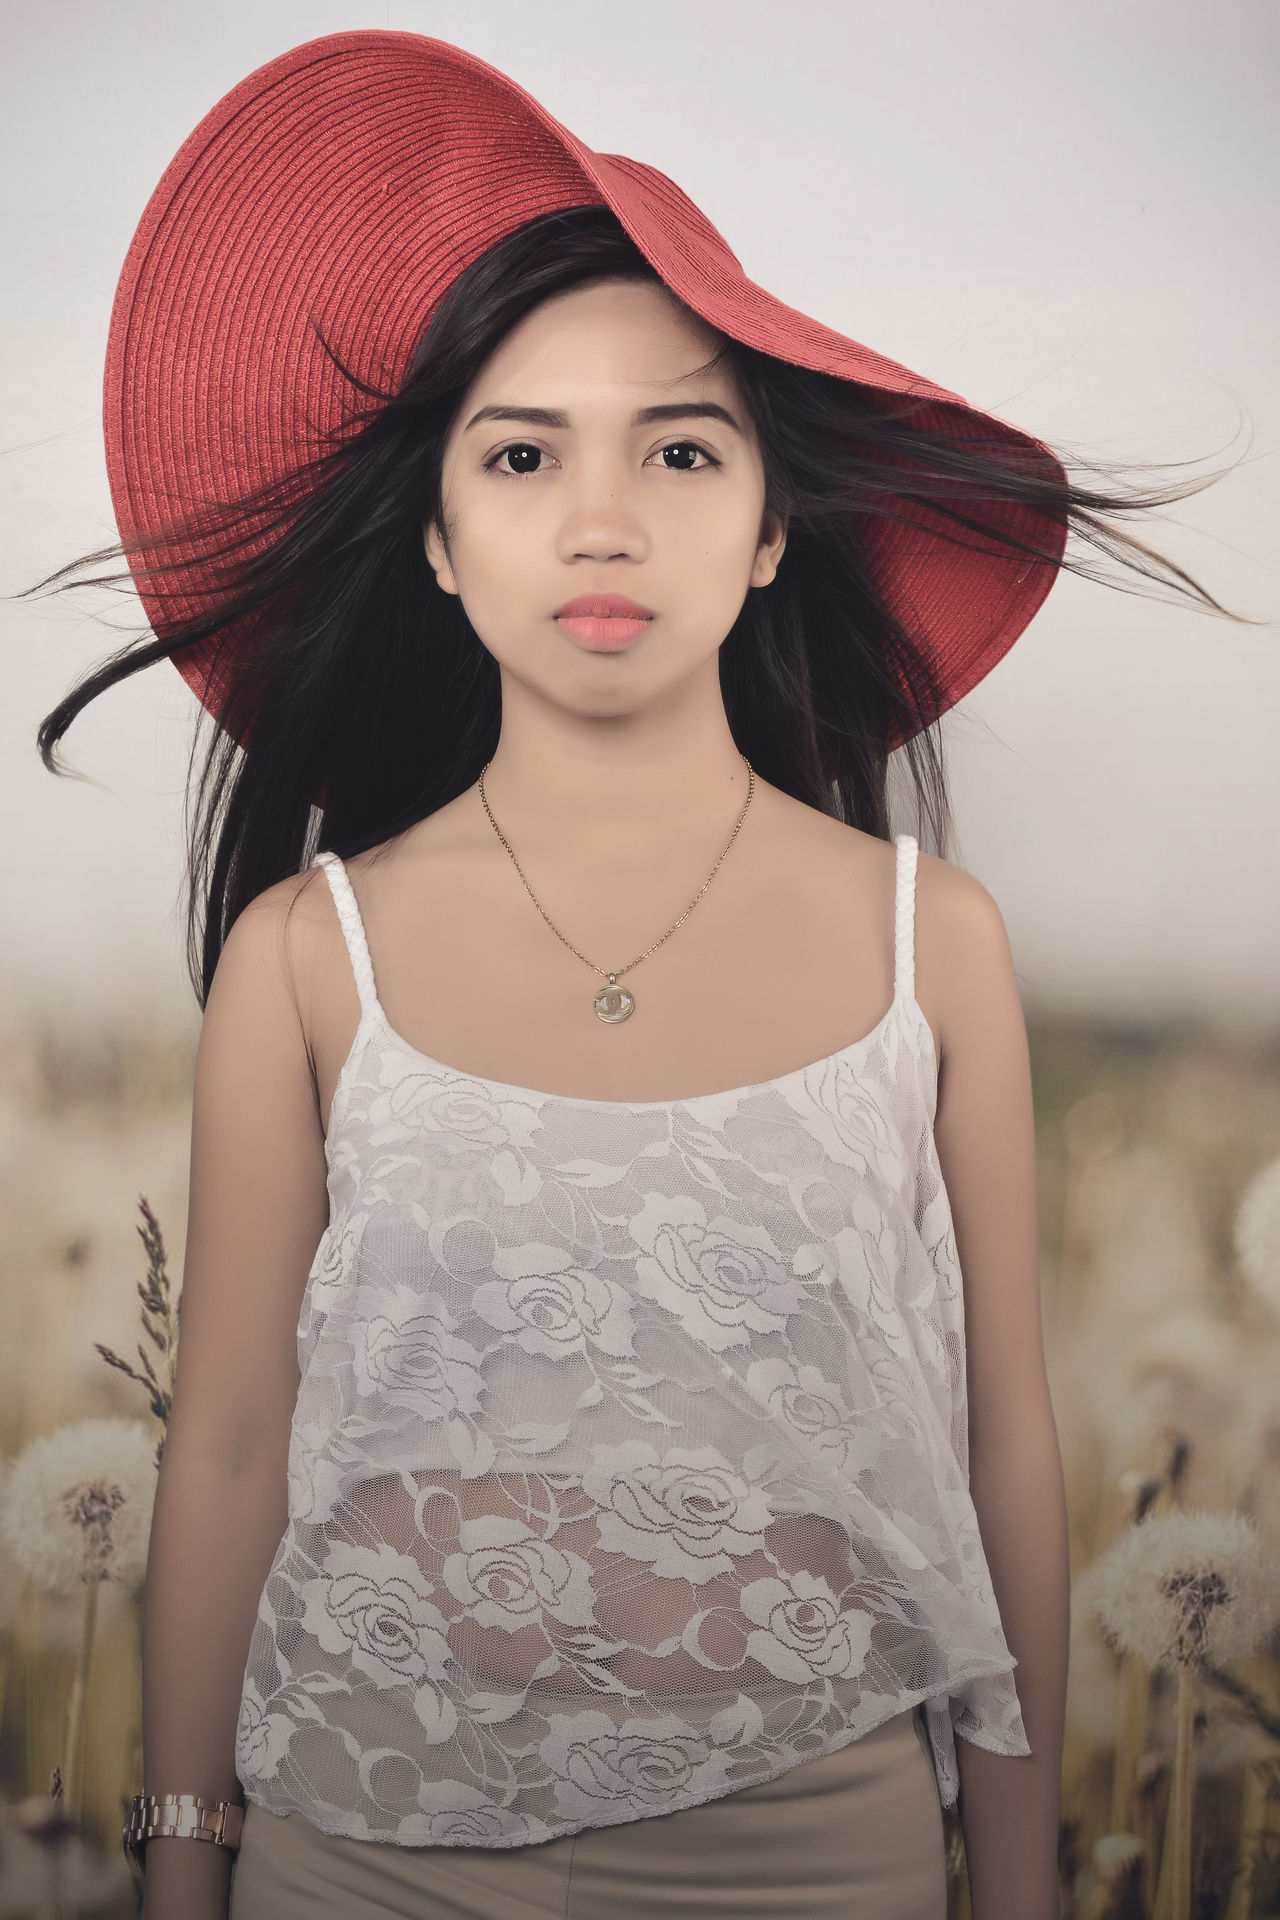 Asian  Fields Filipina Beauty Girl Red Hat Studio Photography White Flower Windy Day